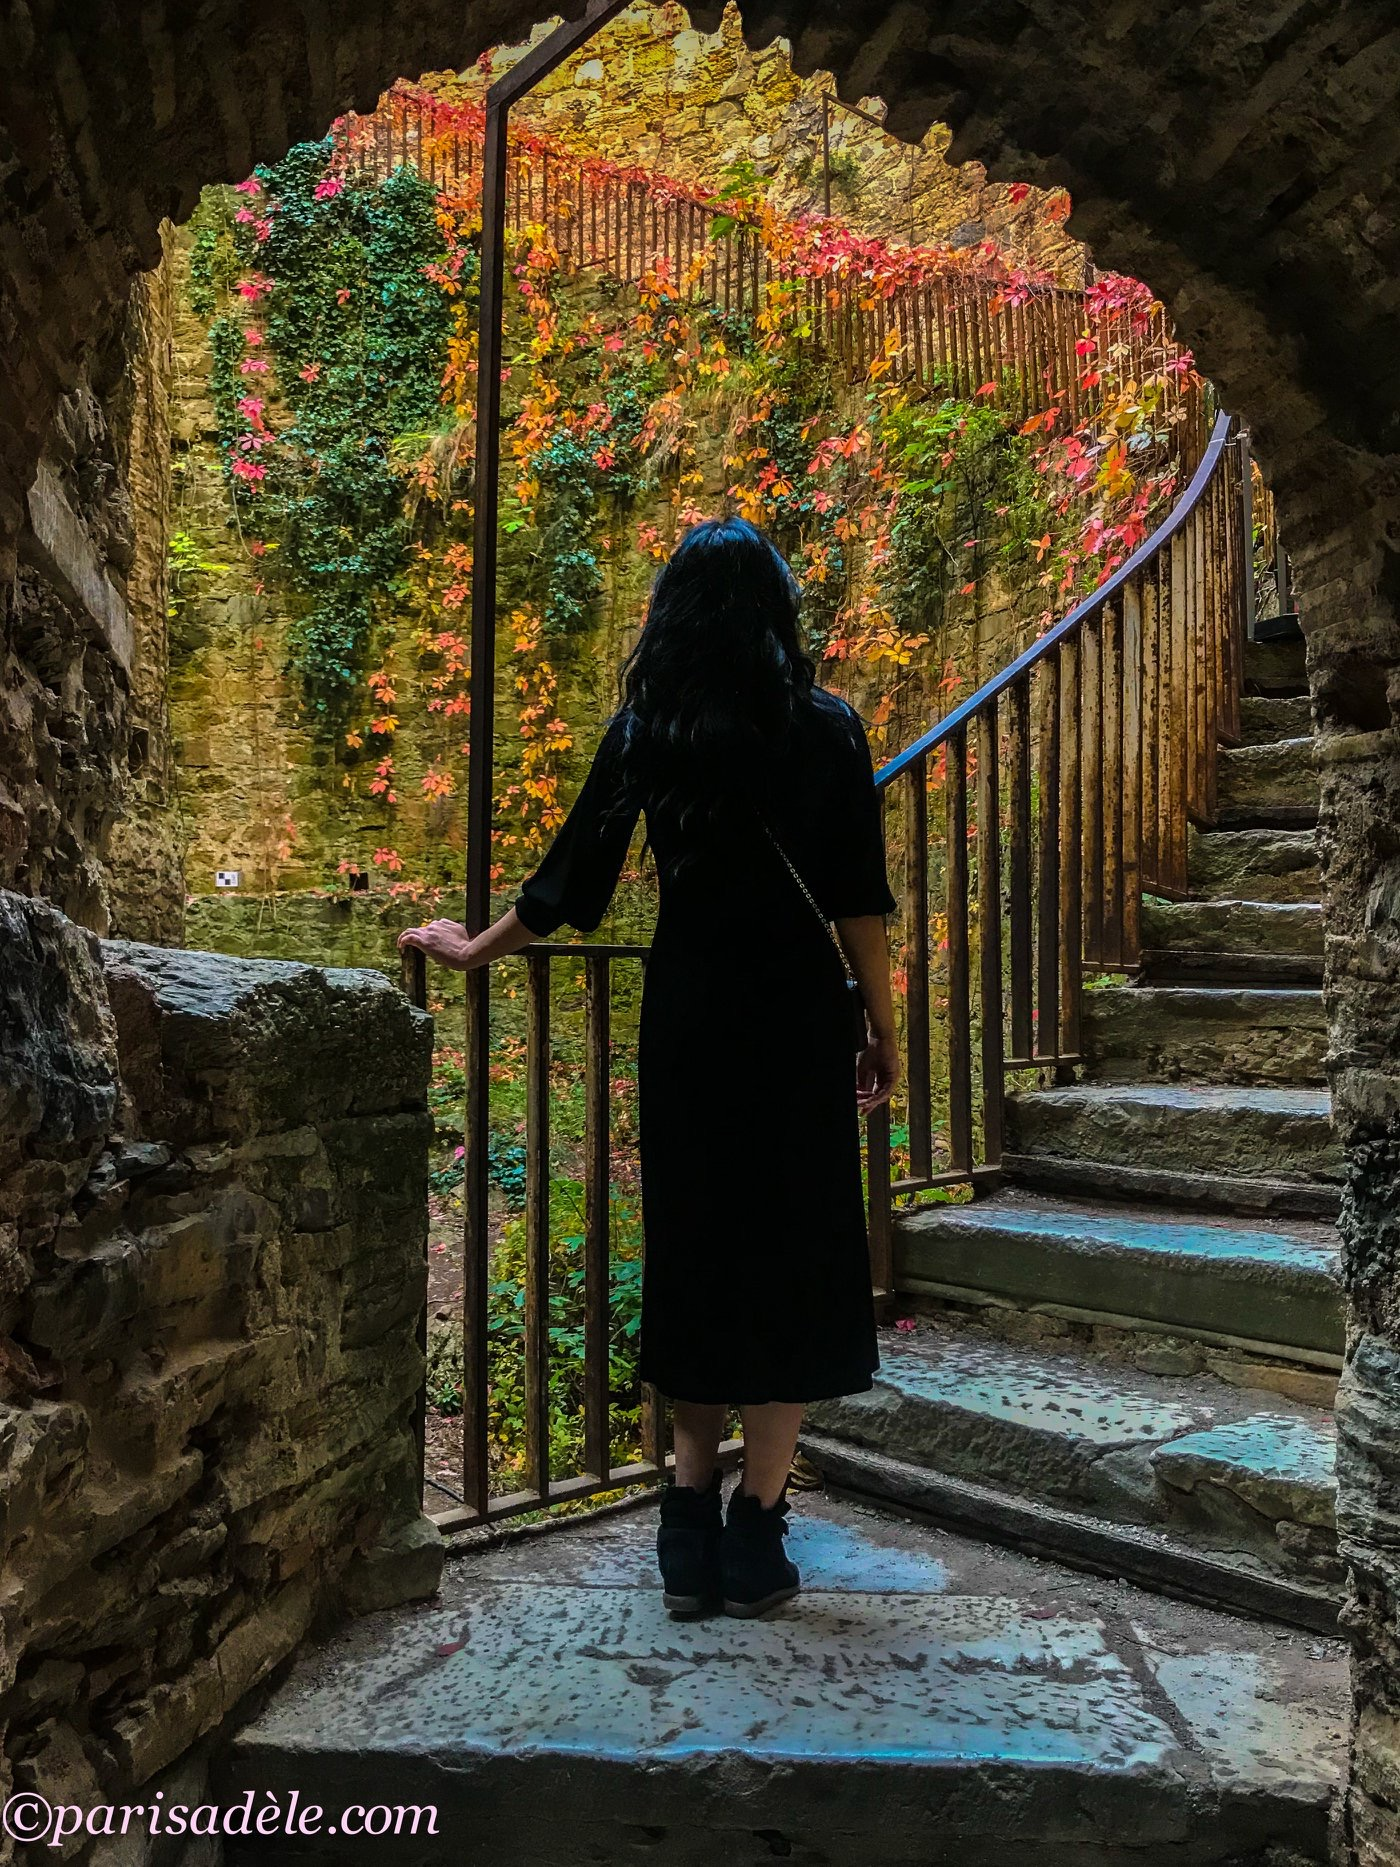 A woman in a black dress standing in an archway looking up ancient stone steps. The background is a stone wall covered in green, orange, and red vines.